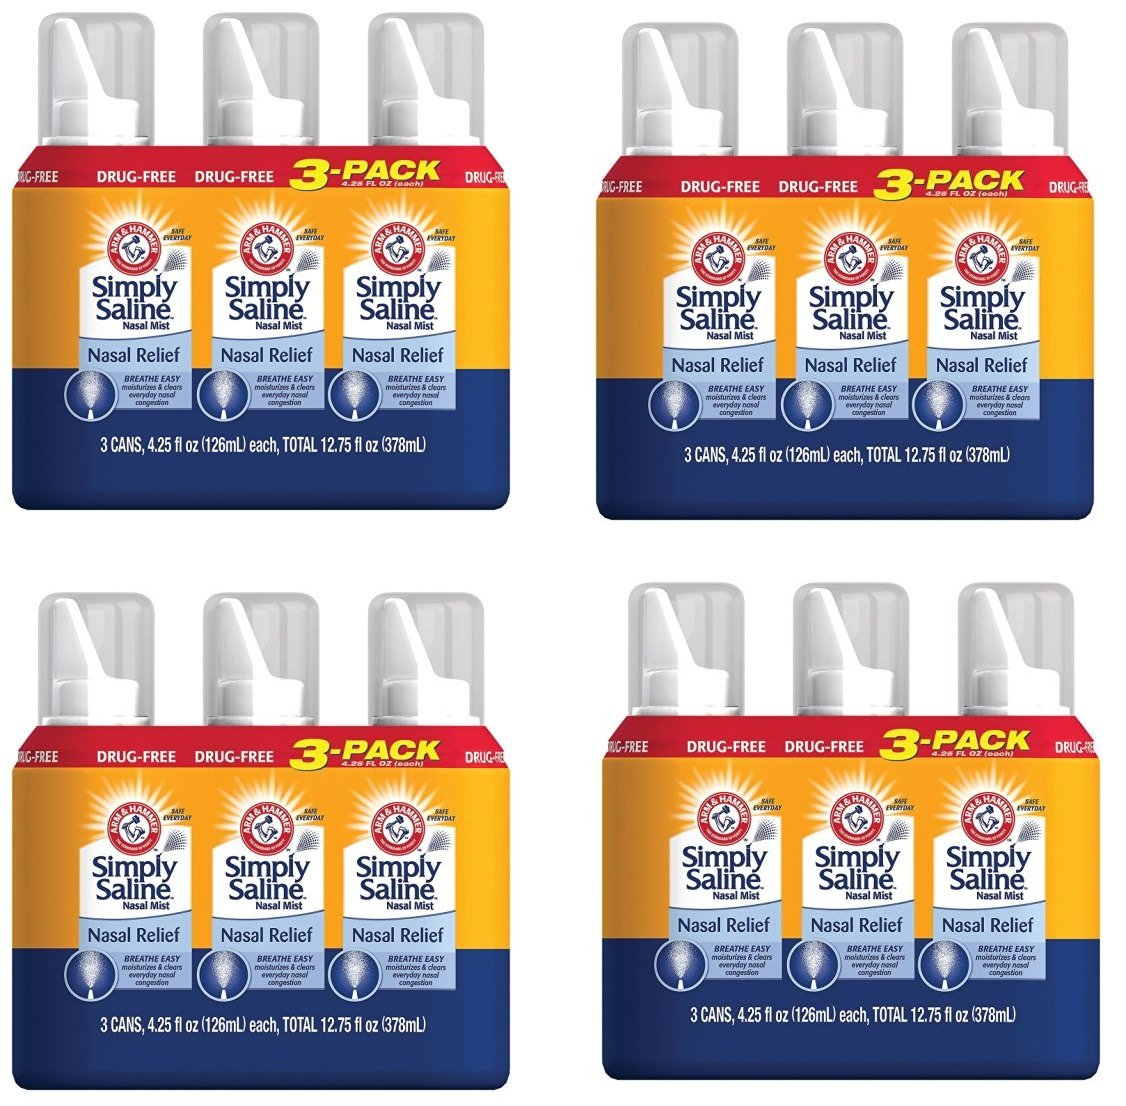 Arm & Hammer ZoGuPe Simply Saline Nasal Relief, 4.25 oz, 12 Pack